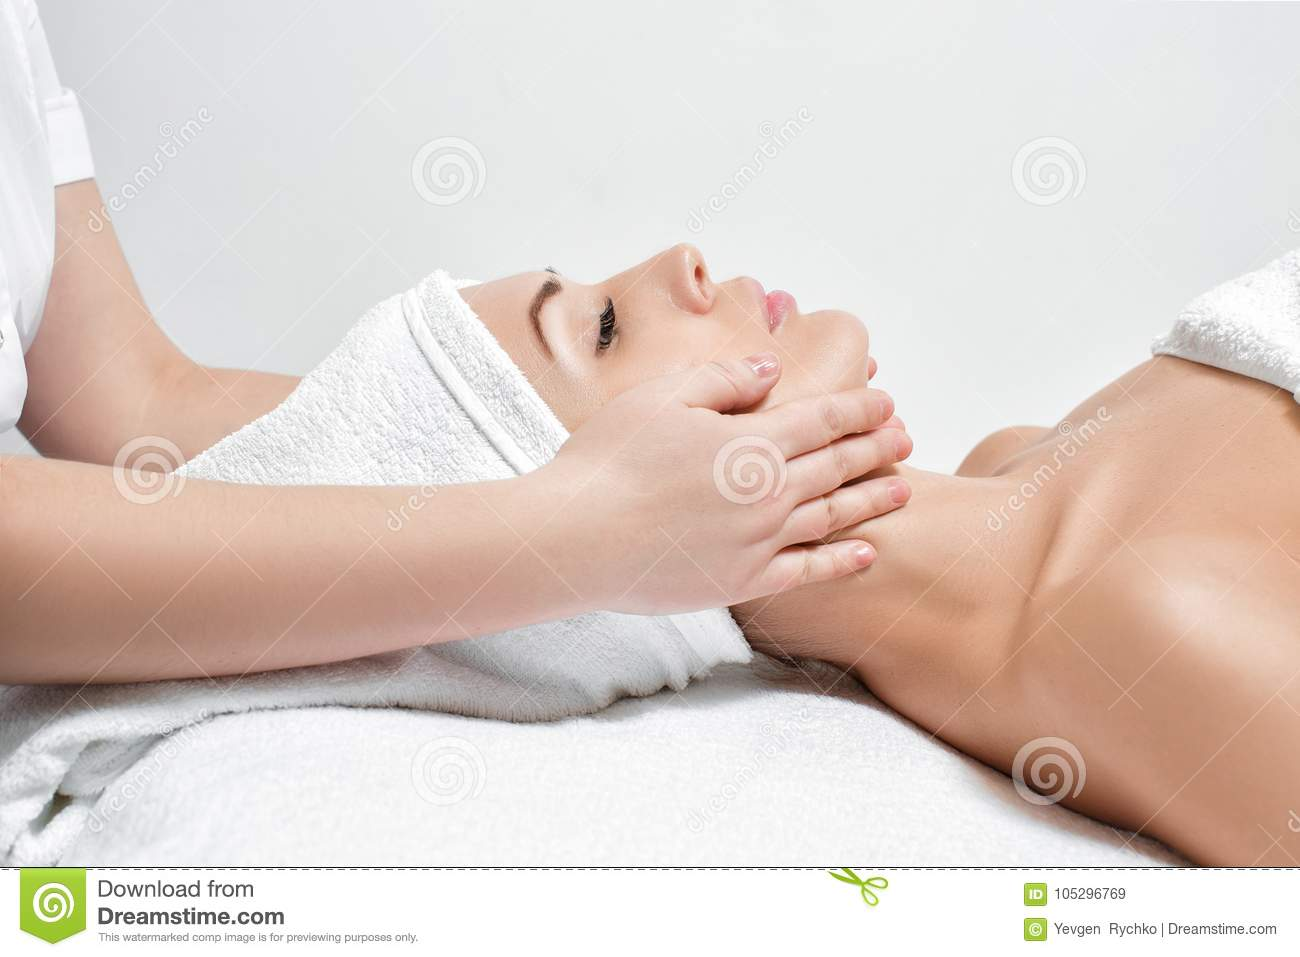 Femme recevant le massage facial au salon de station thermale